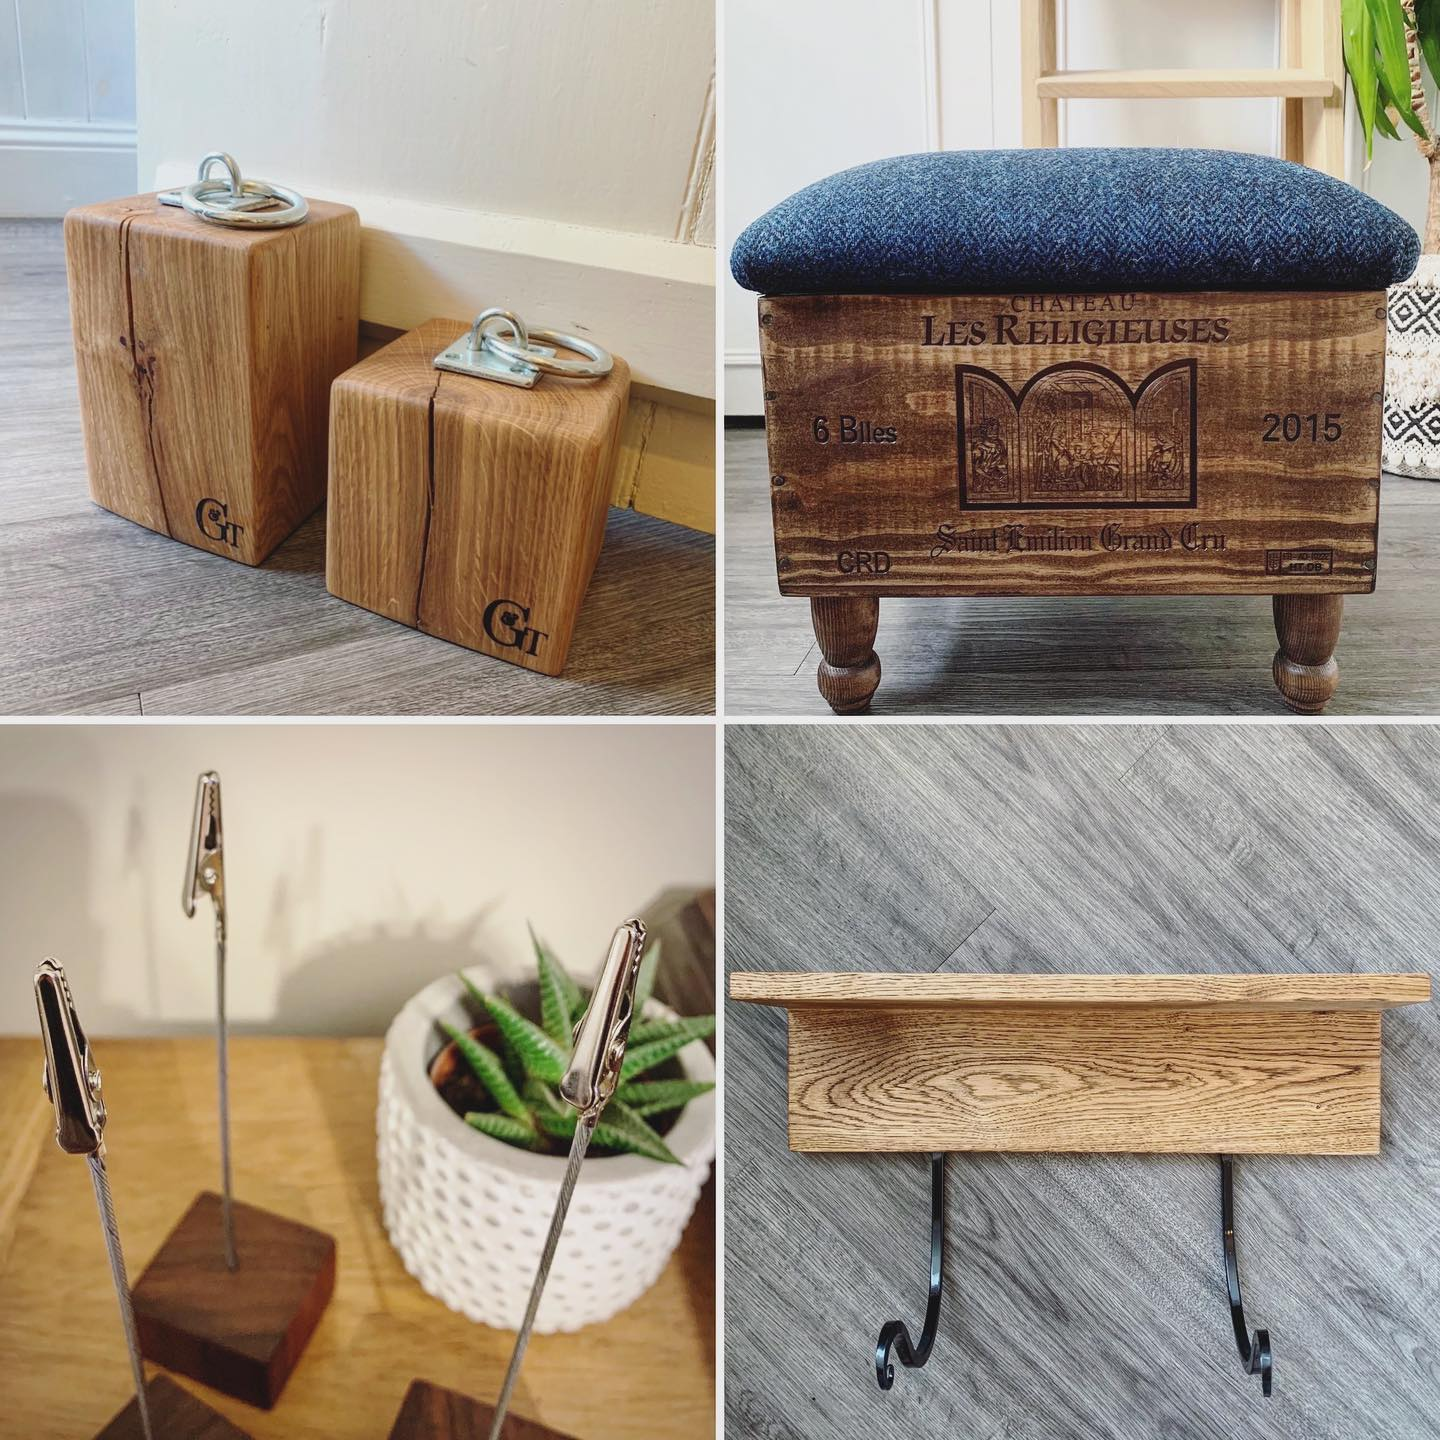 Just a few of the items included in today's @bathartisan virtual Facebook Market.Doorstops from £19Harris Tweed Ottoman £69Photo stands £12 set of 4Yoga mat hooks £45 (shipping costs vary between products- UK only) Hope everyone is having a lovely weekend so far! ...#bathartisan #marketday #virtualmarket #stayathome #craft #design #handmade #homewares #gingerandweed